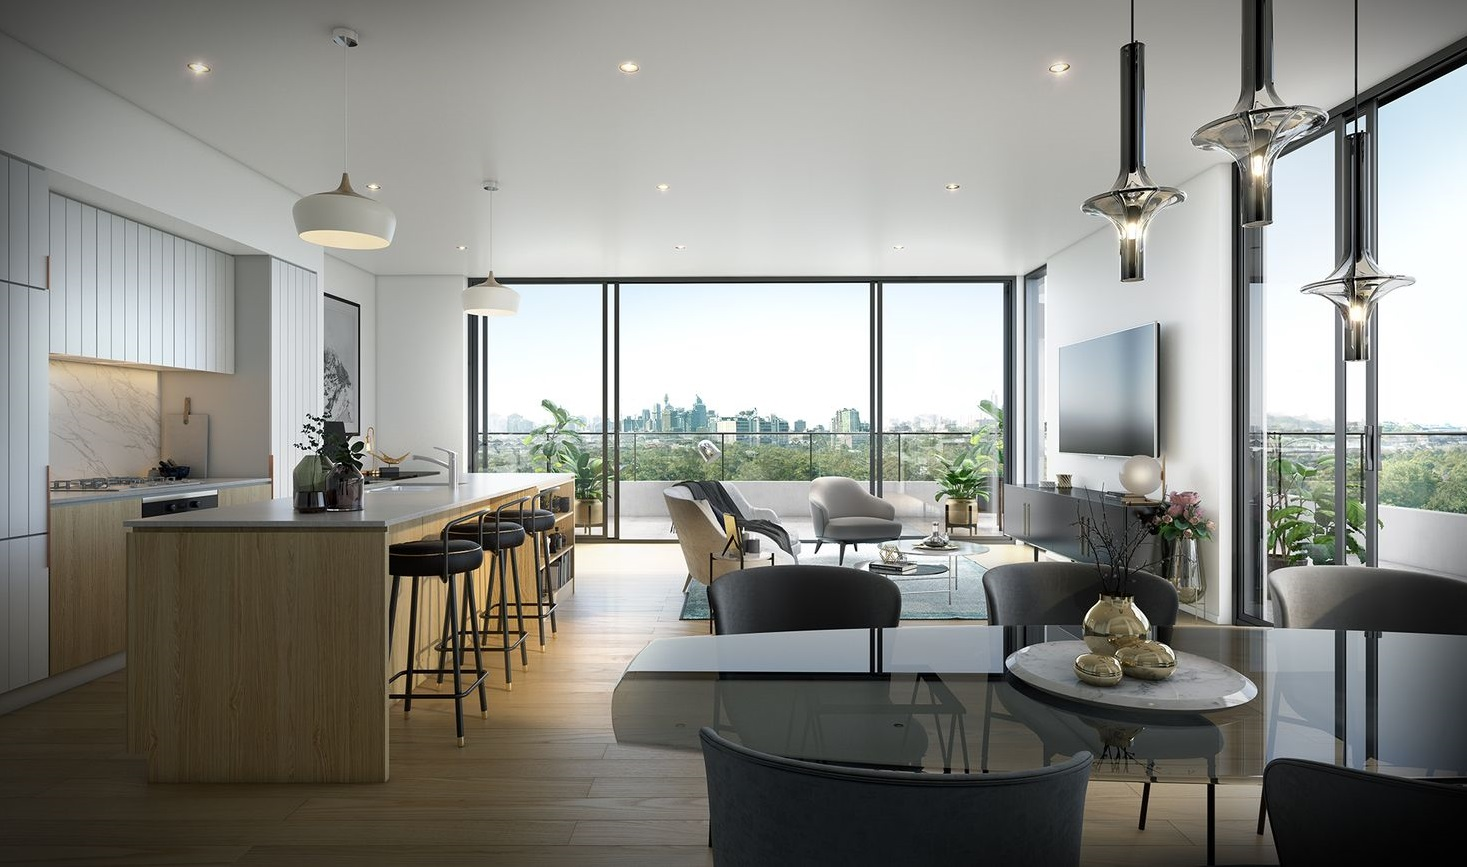 Contemporary Lifestyle in the City